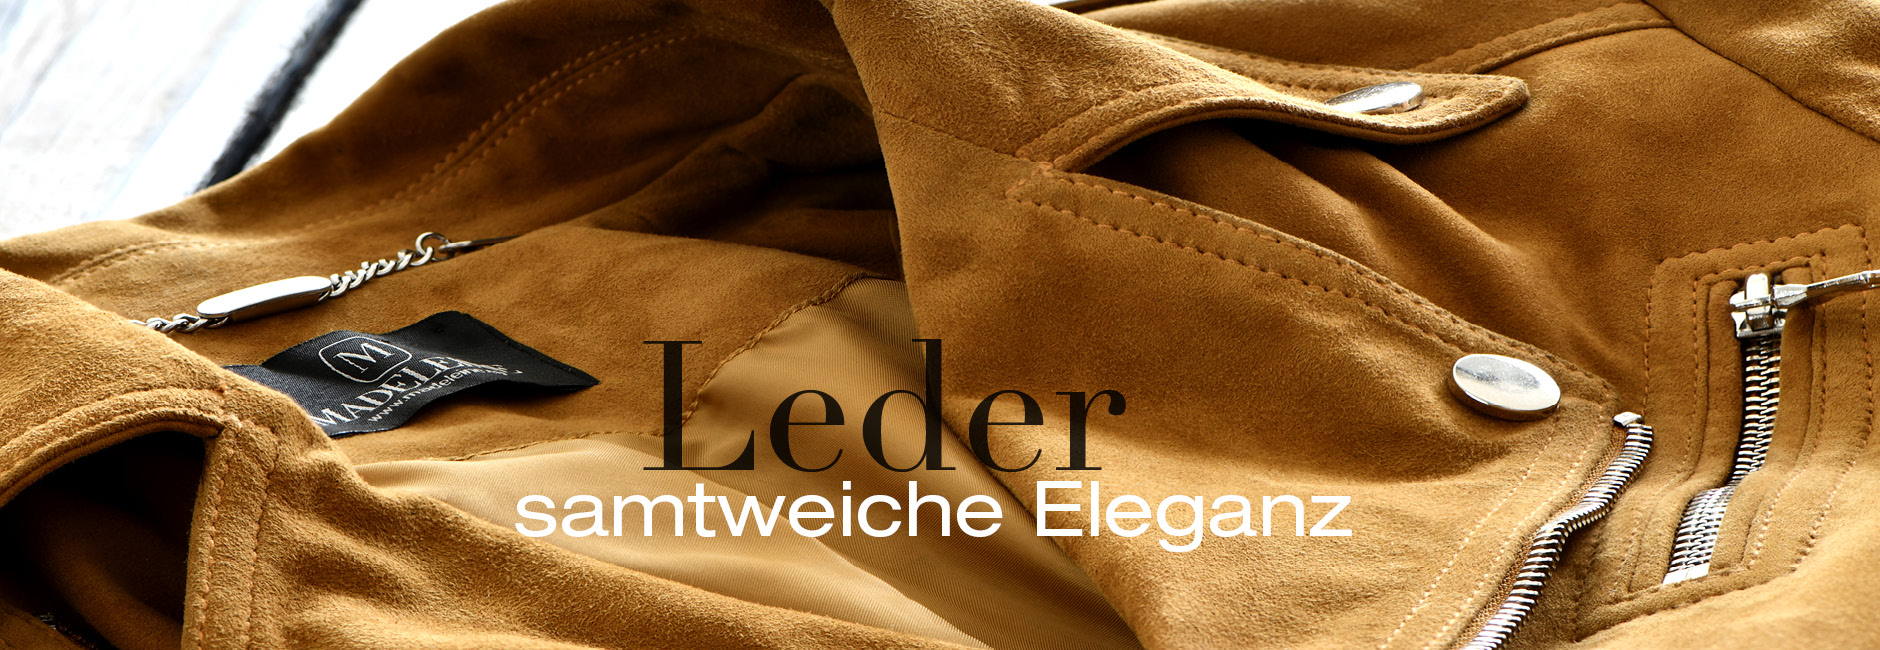 CHD_AT_Deco_Leder_1_d.jpg